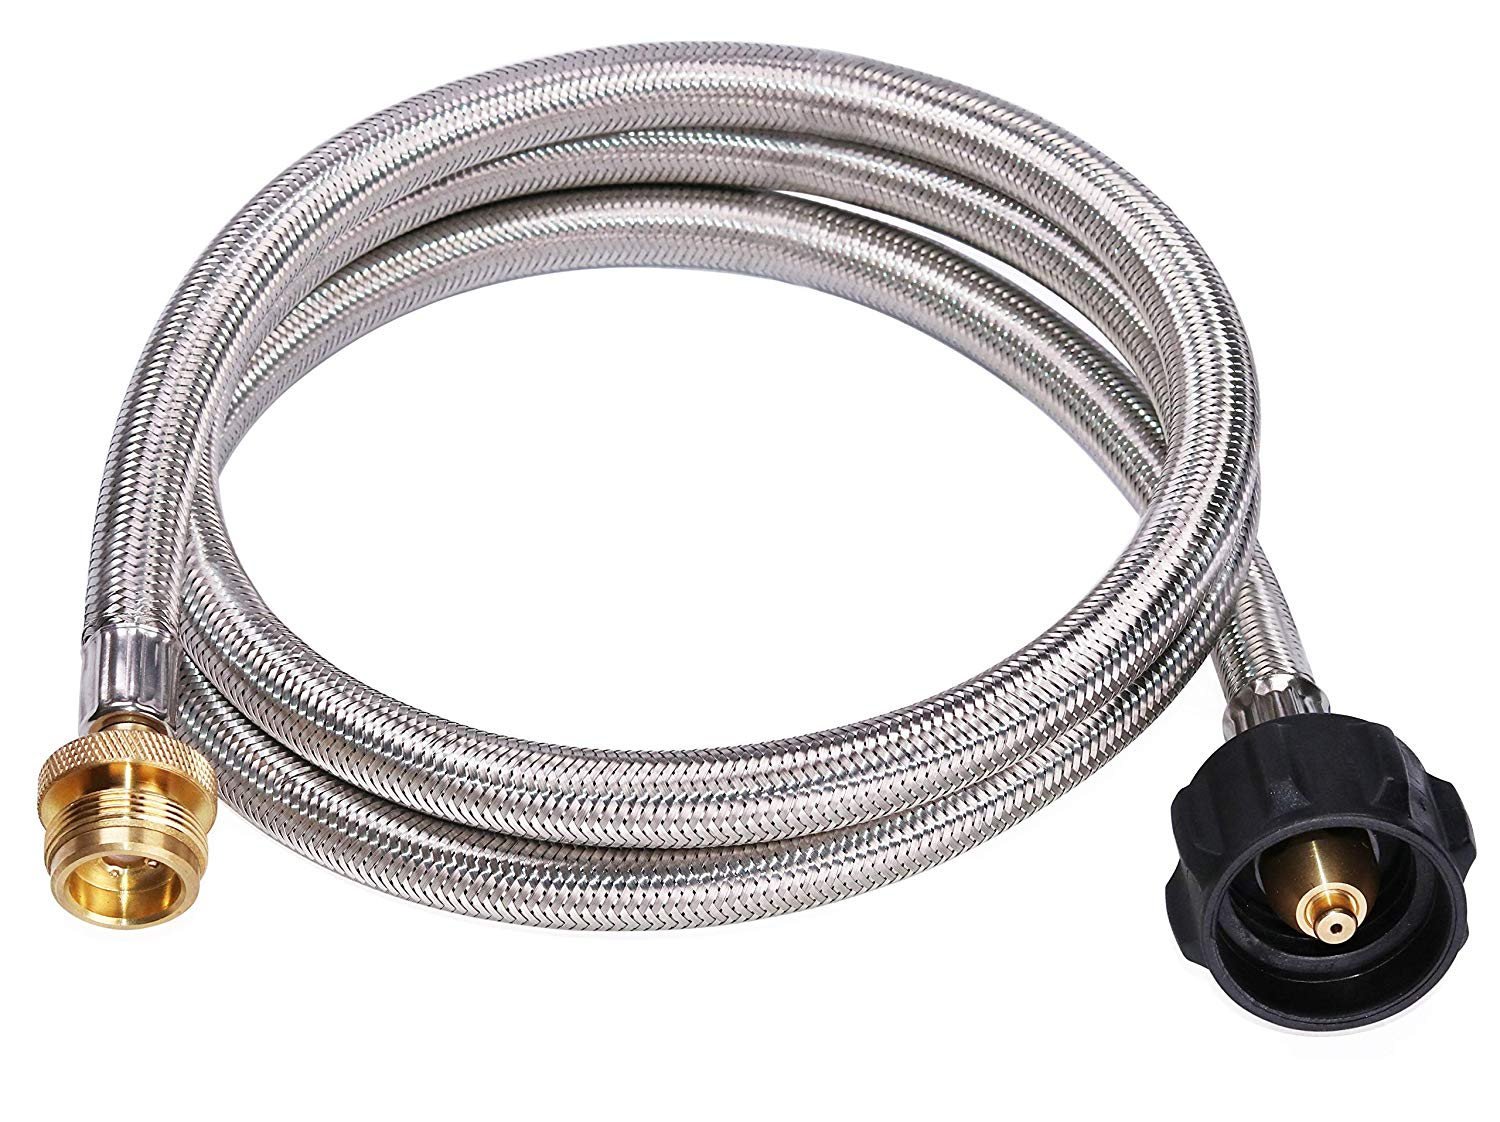 Silver-braided hose coiled up